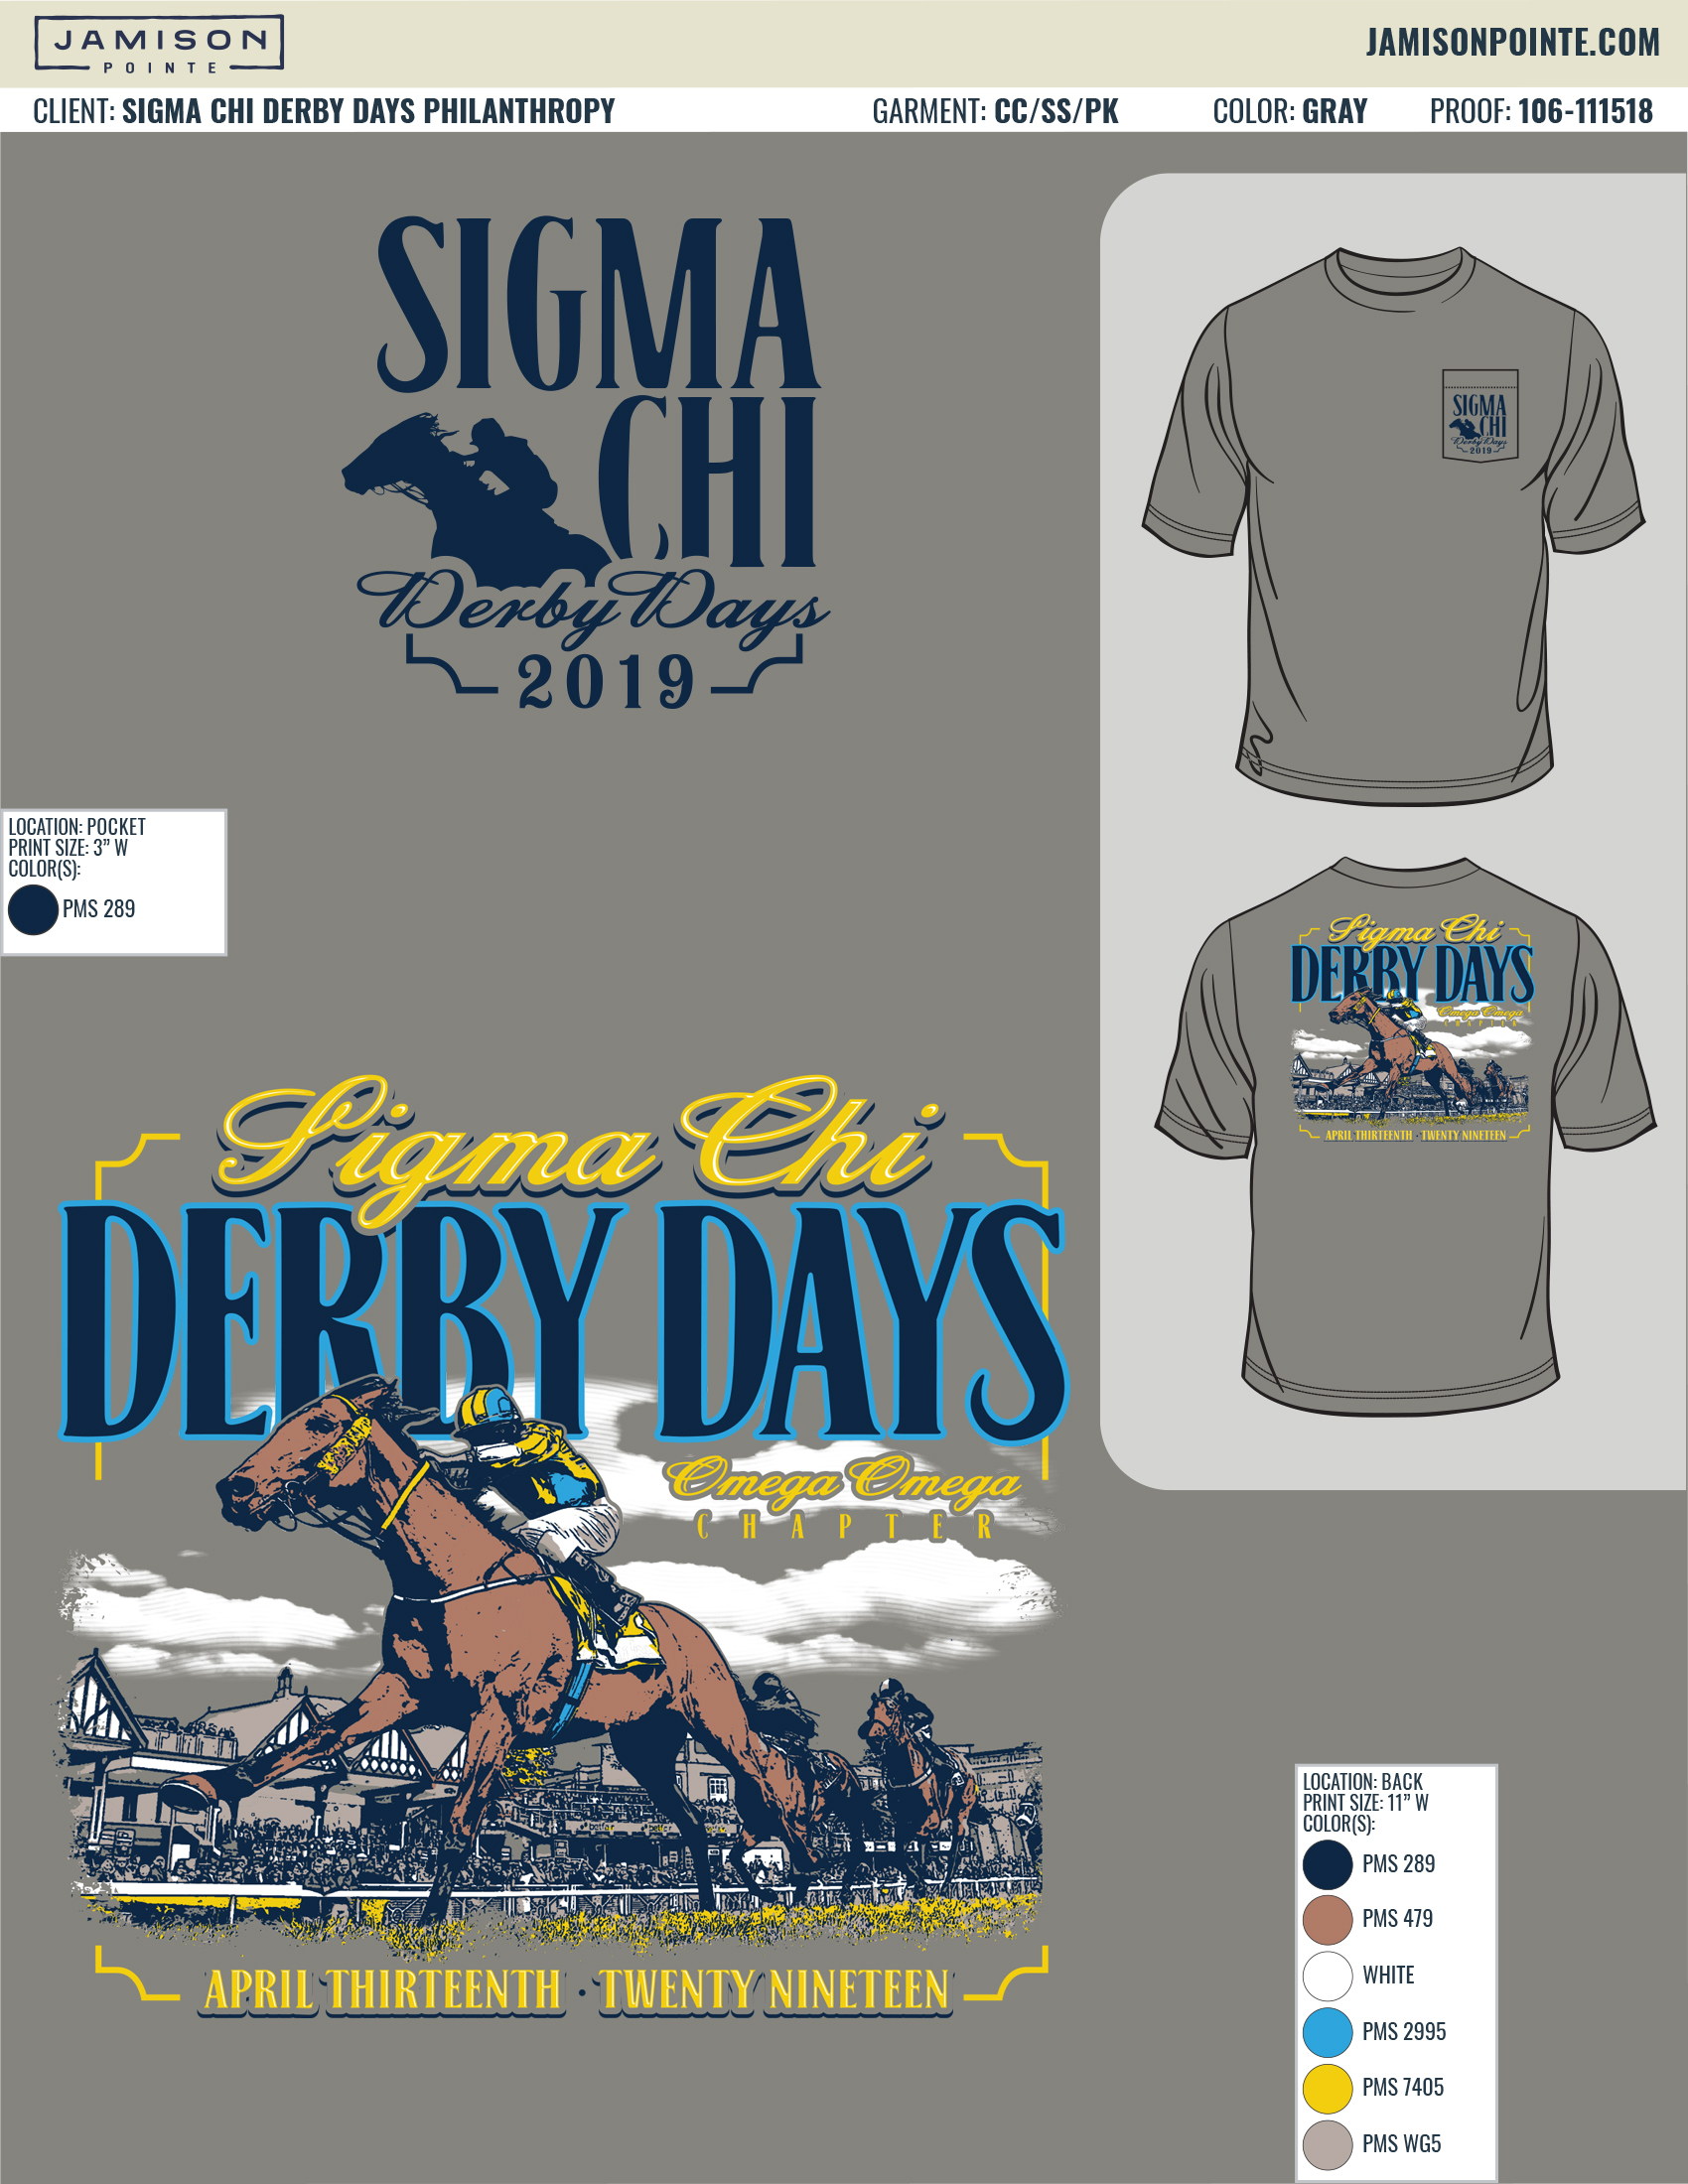 106-111518 Sigma Chi Derby Days Philanthropy.jpg